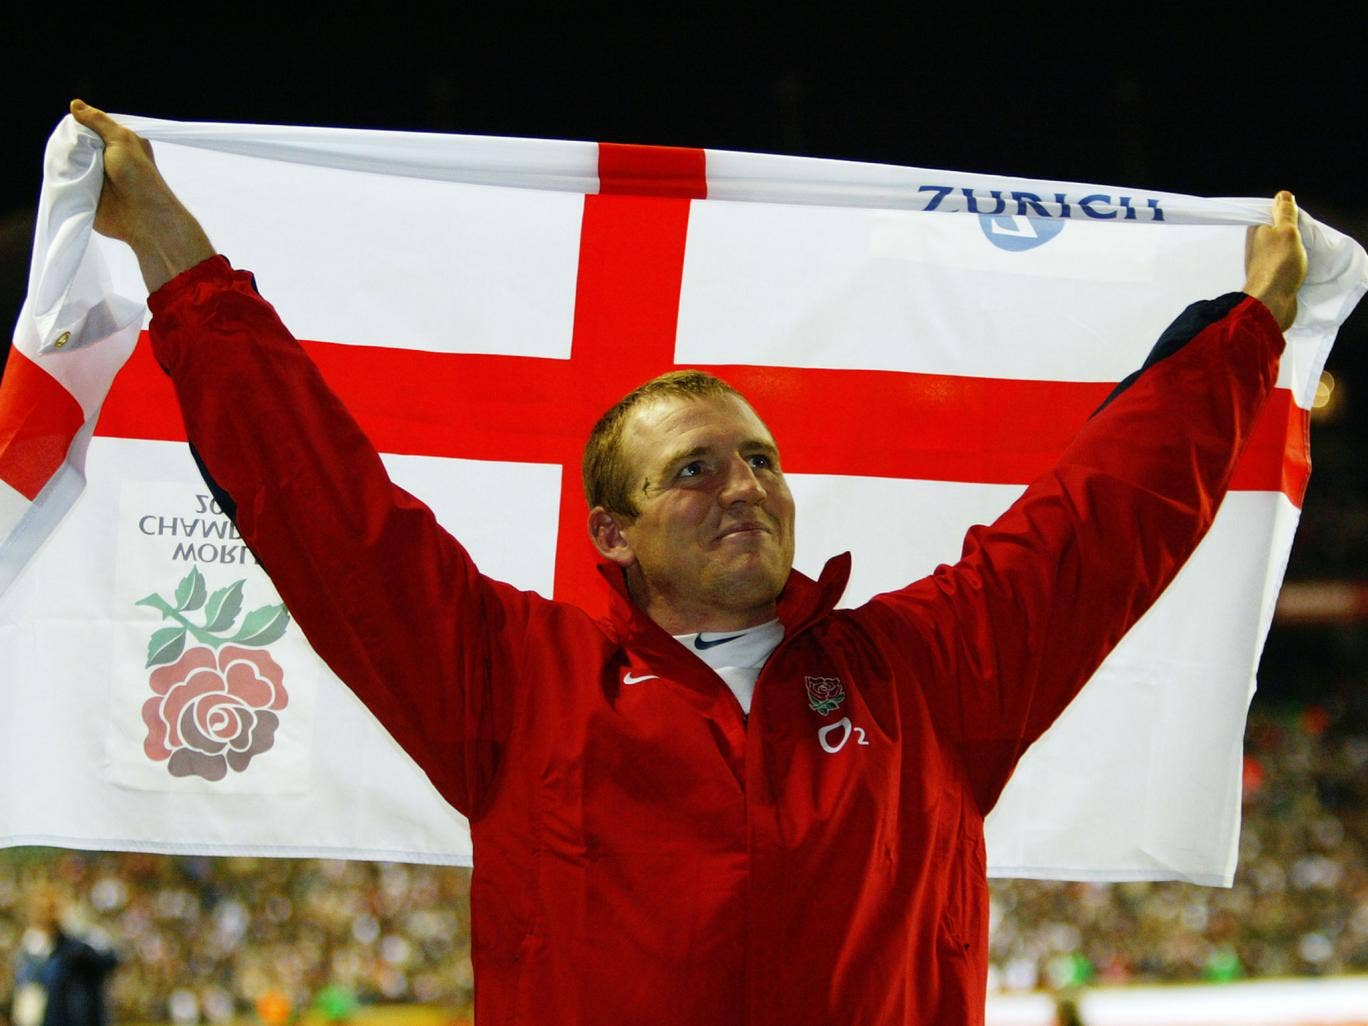 Mike Tindall celebrates following England's 2003 Rugby World Cup victory over Australia